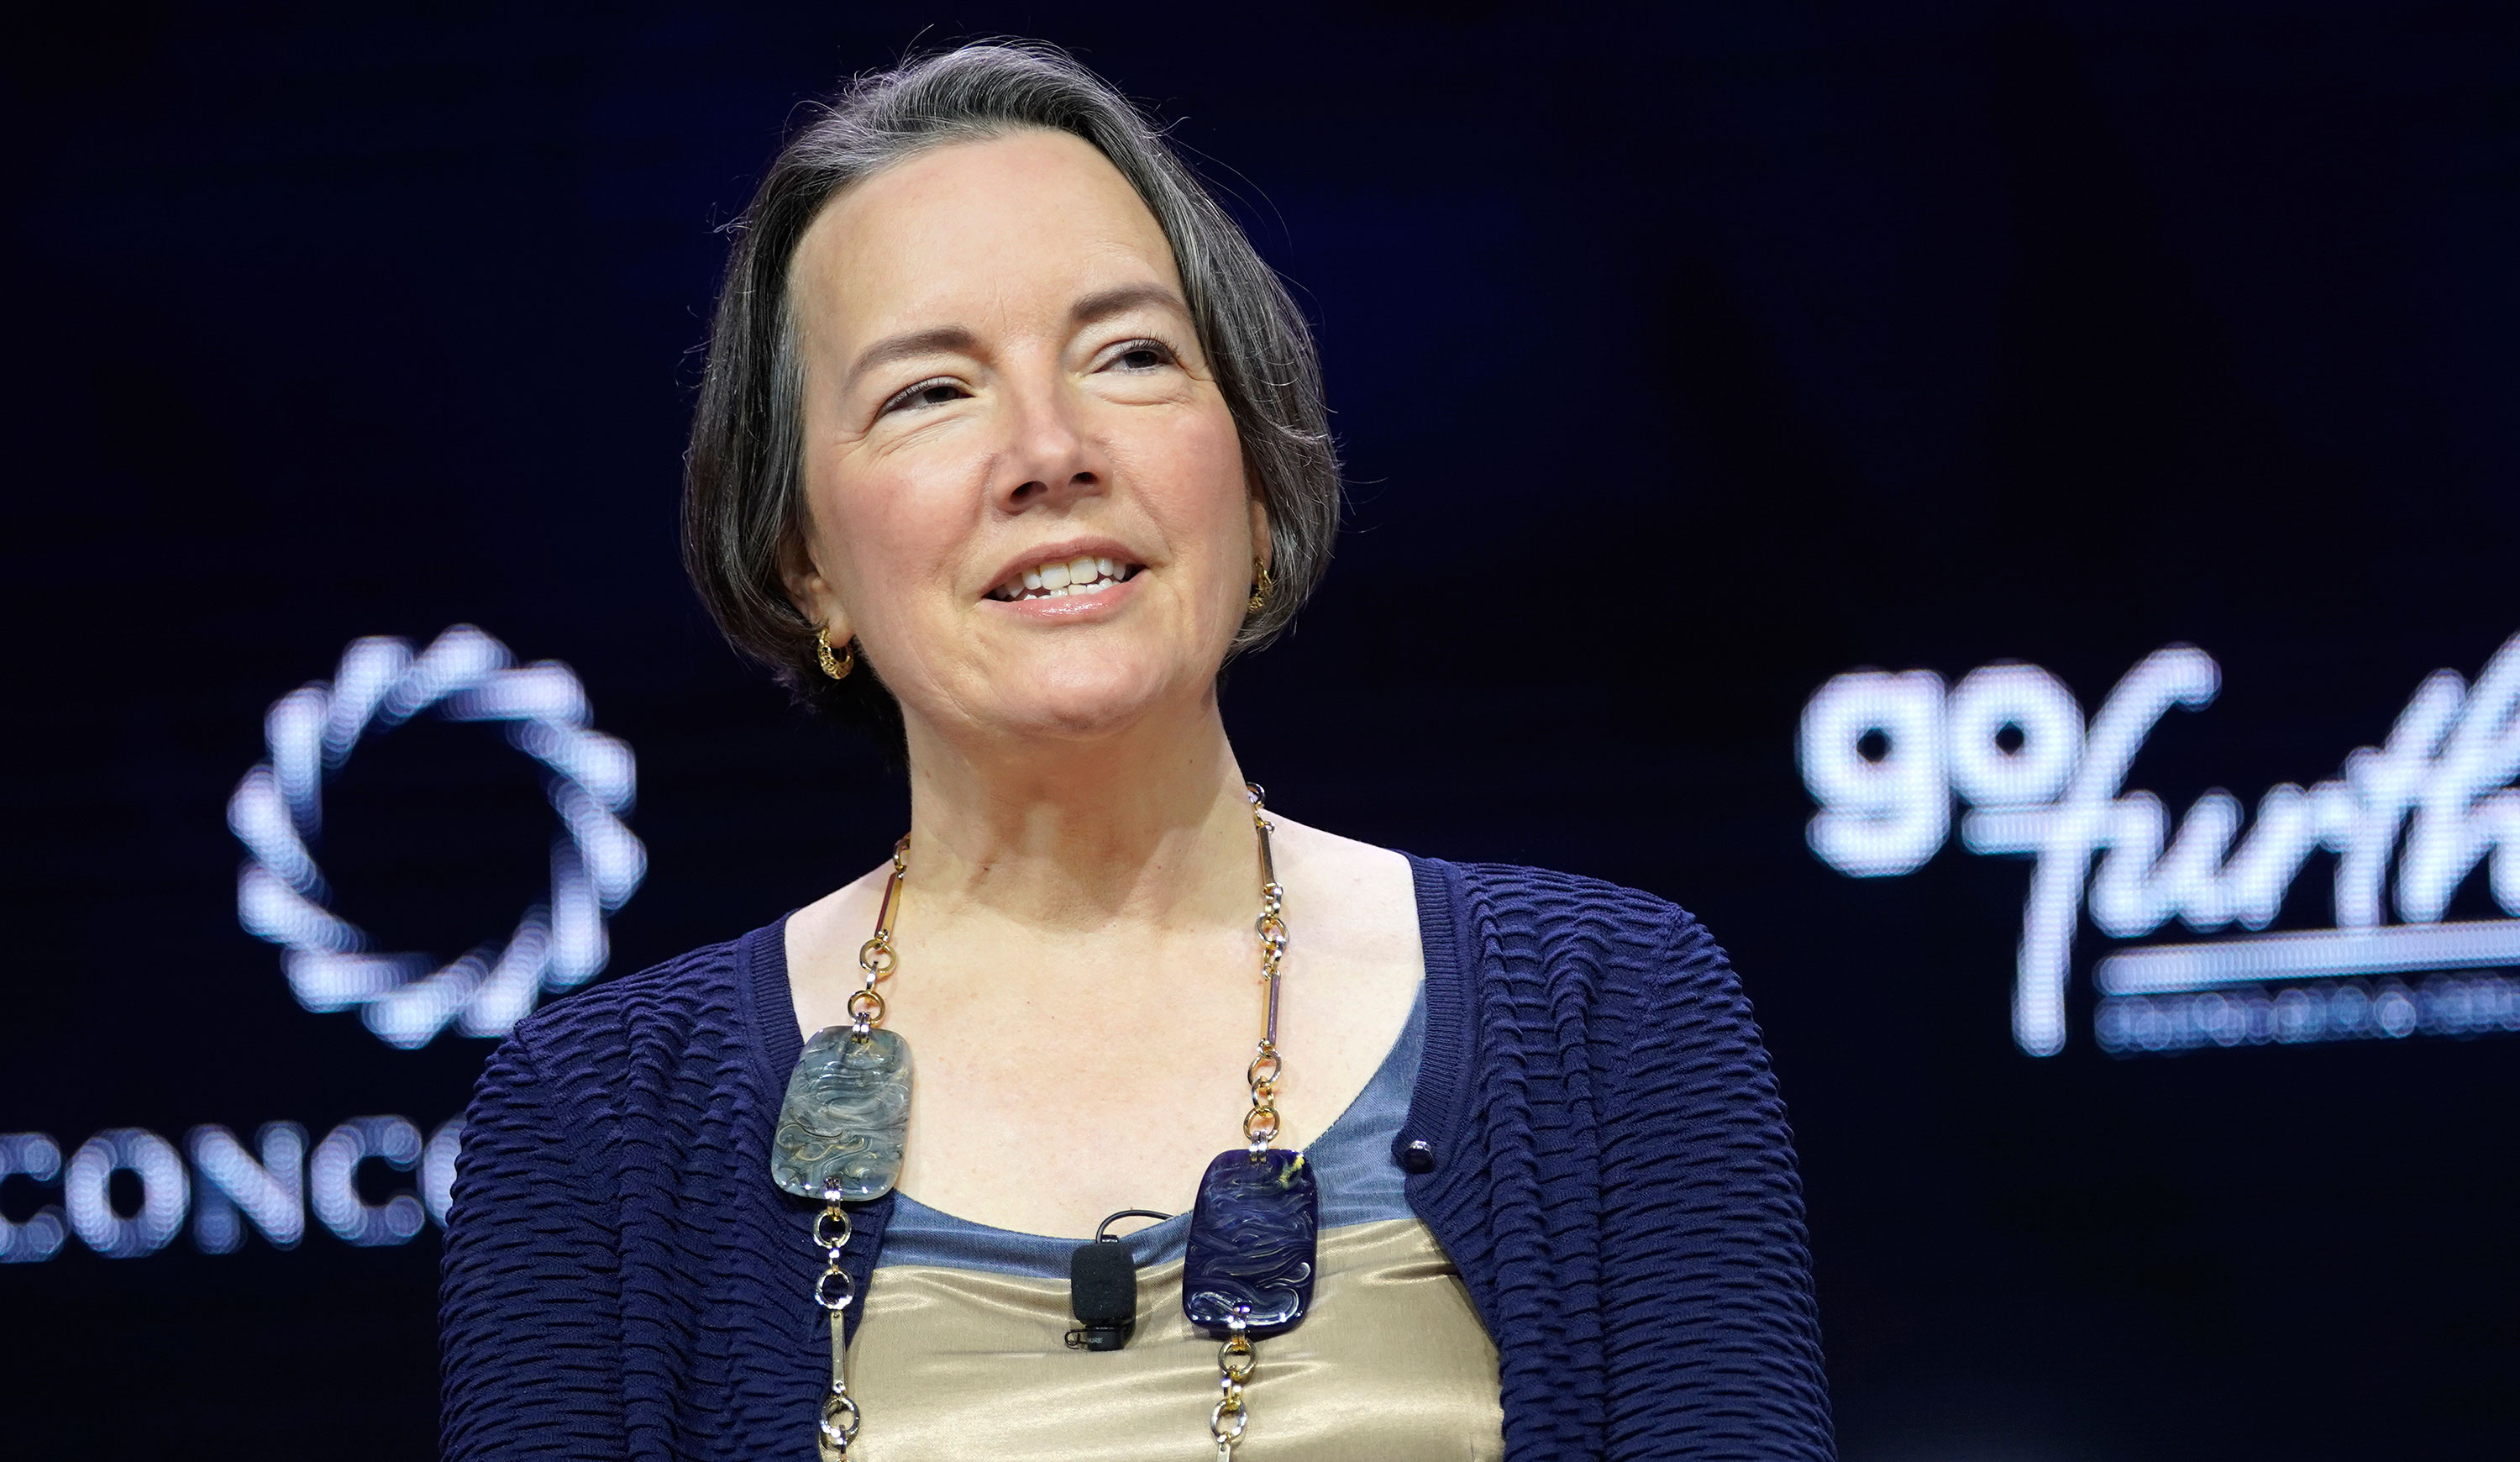 Kathleen McLaughlin, executive vice president and chief sustainability officer for Walmart and president of the Walmart Foundation, speaks onstage during the 2019 Concordia Annual Summit on September 23, 2019 in New York City.